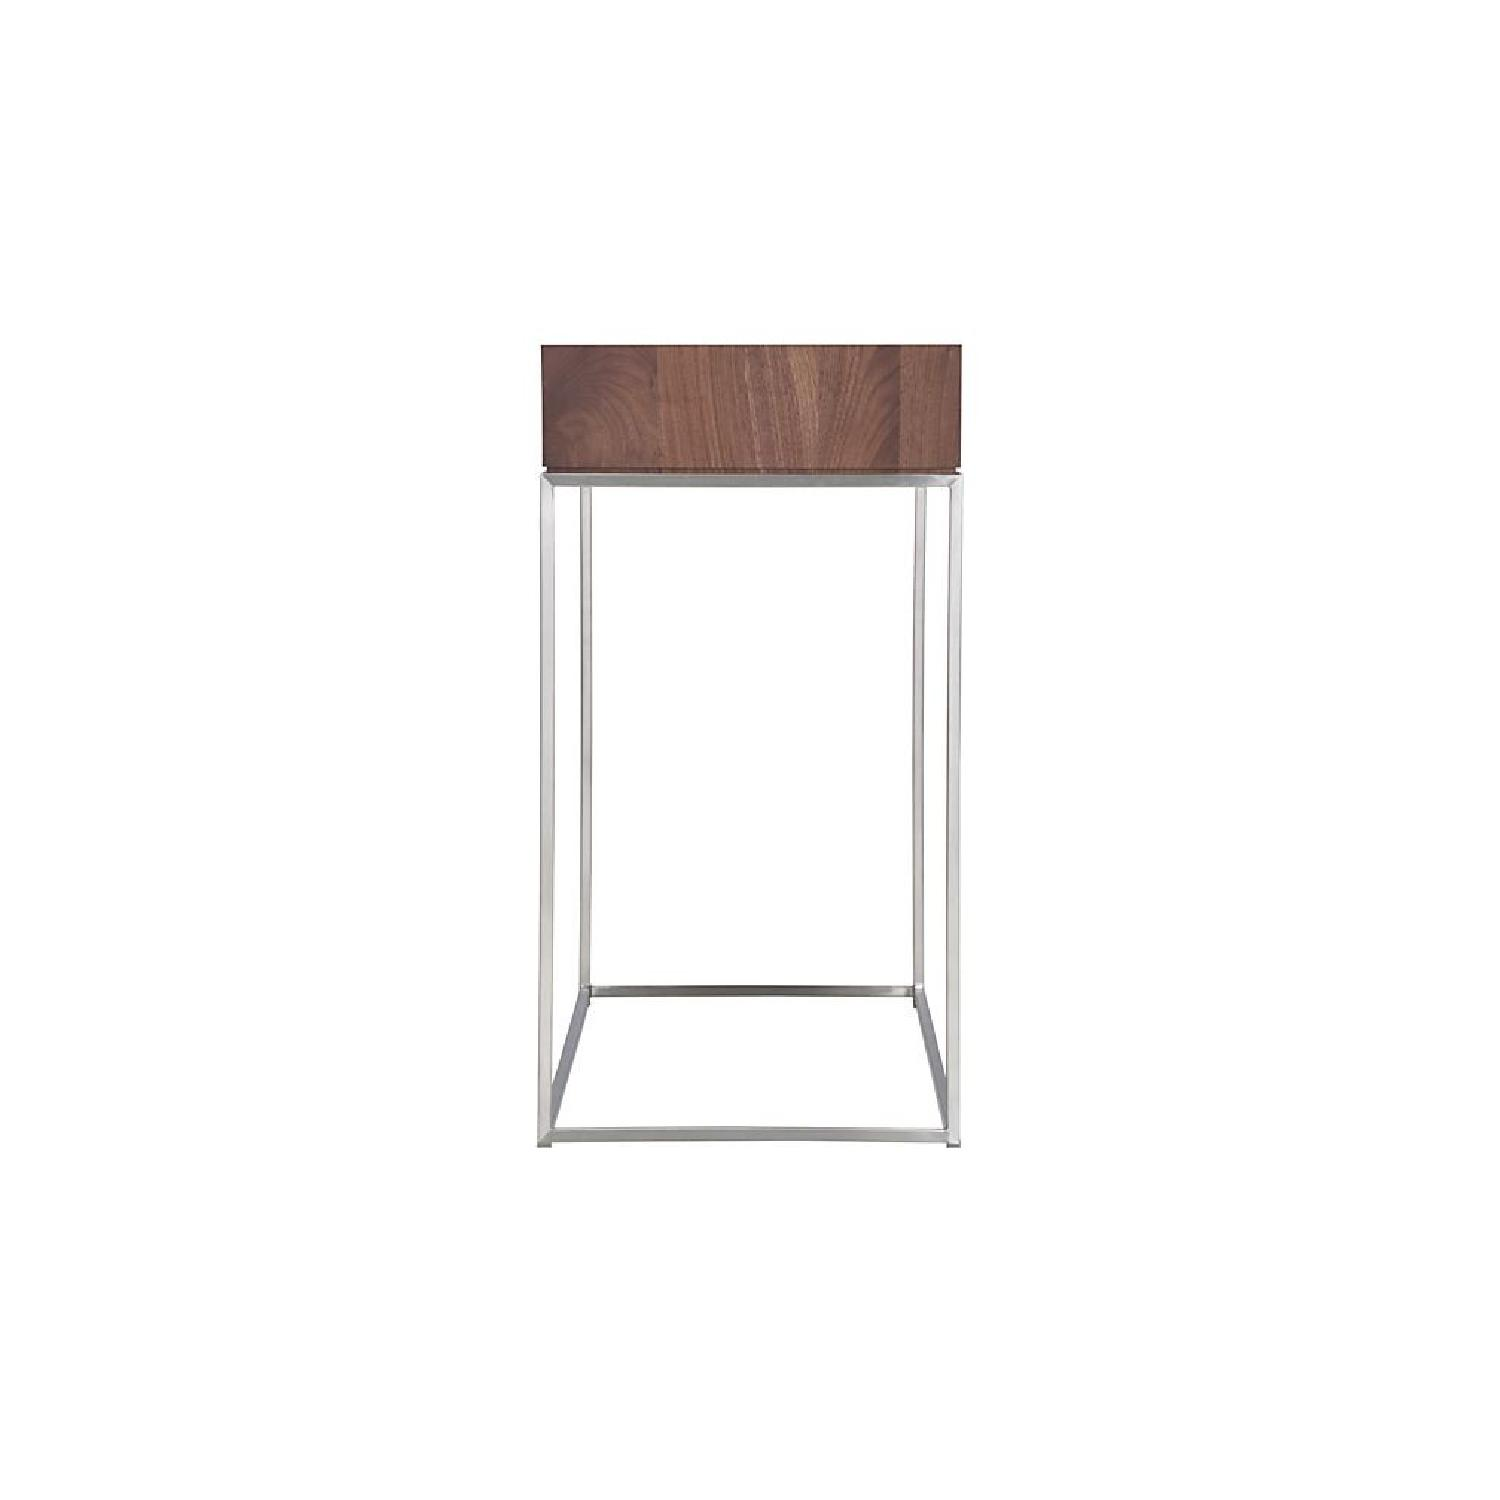 Crate & Barrel Frame Console Table - image-2